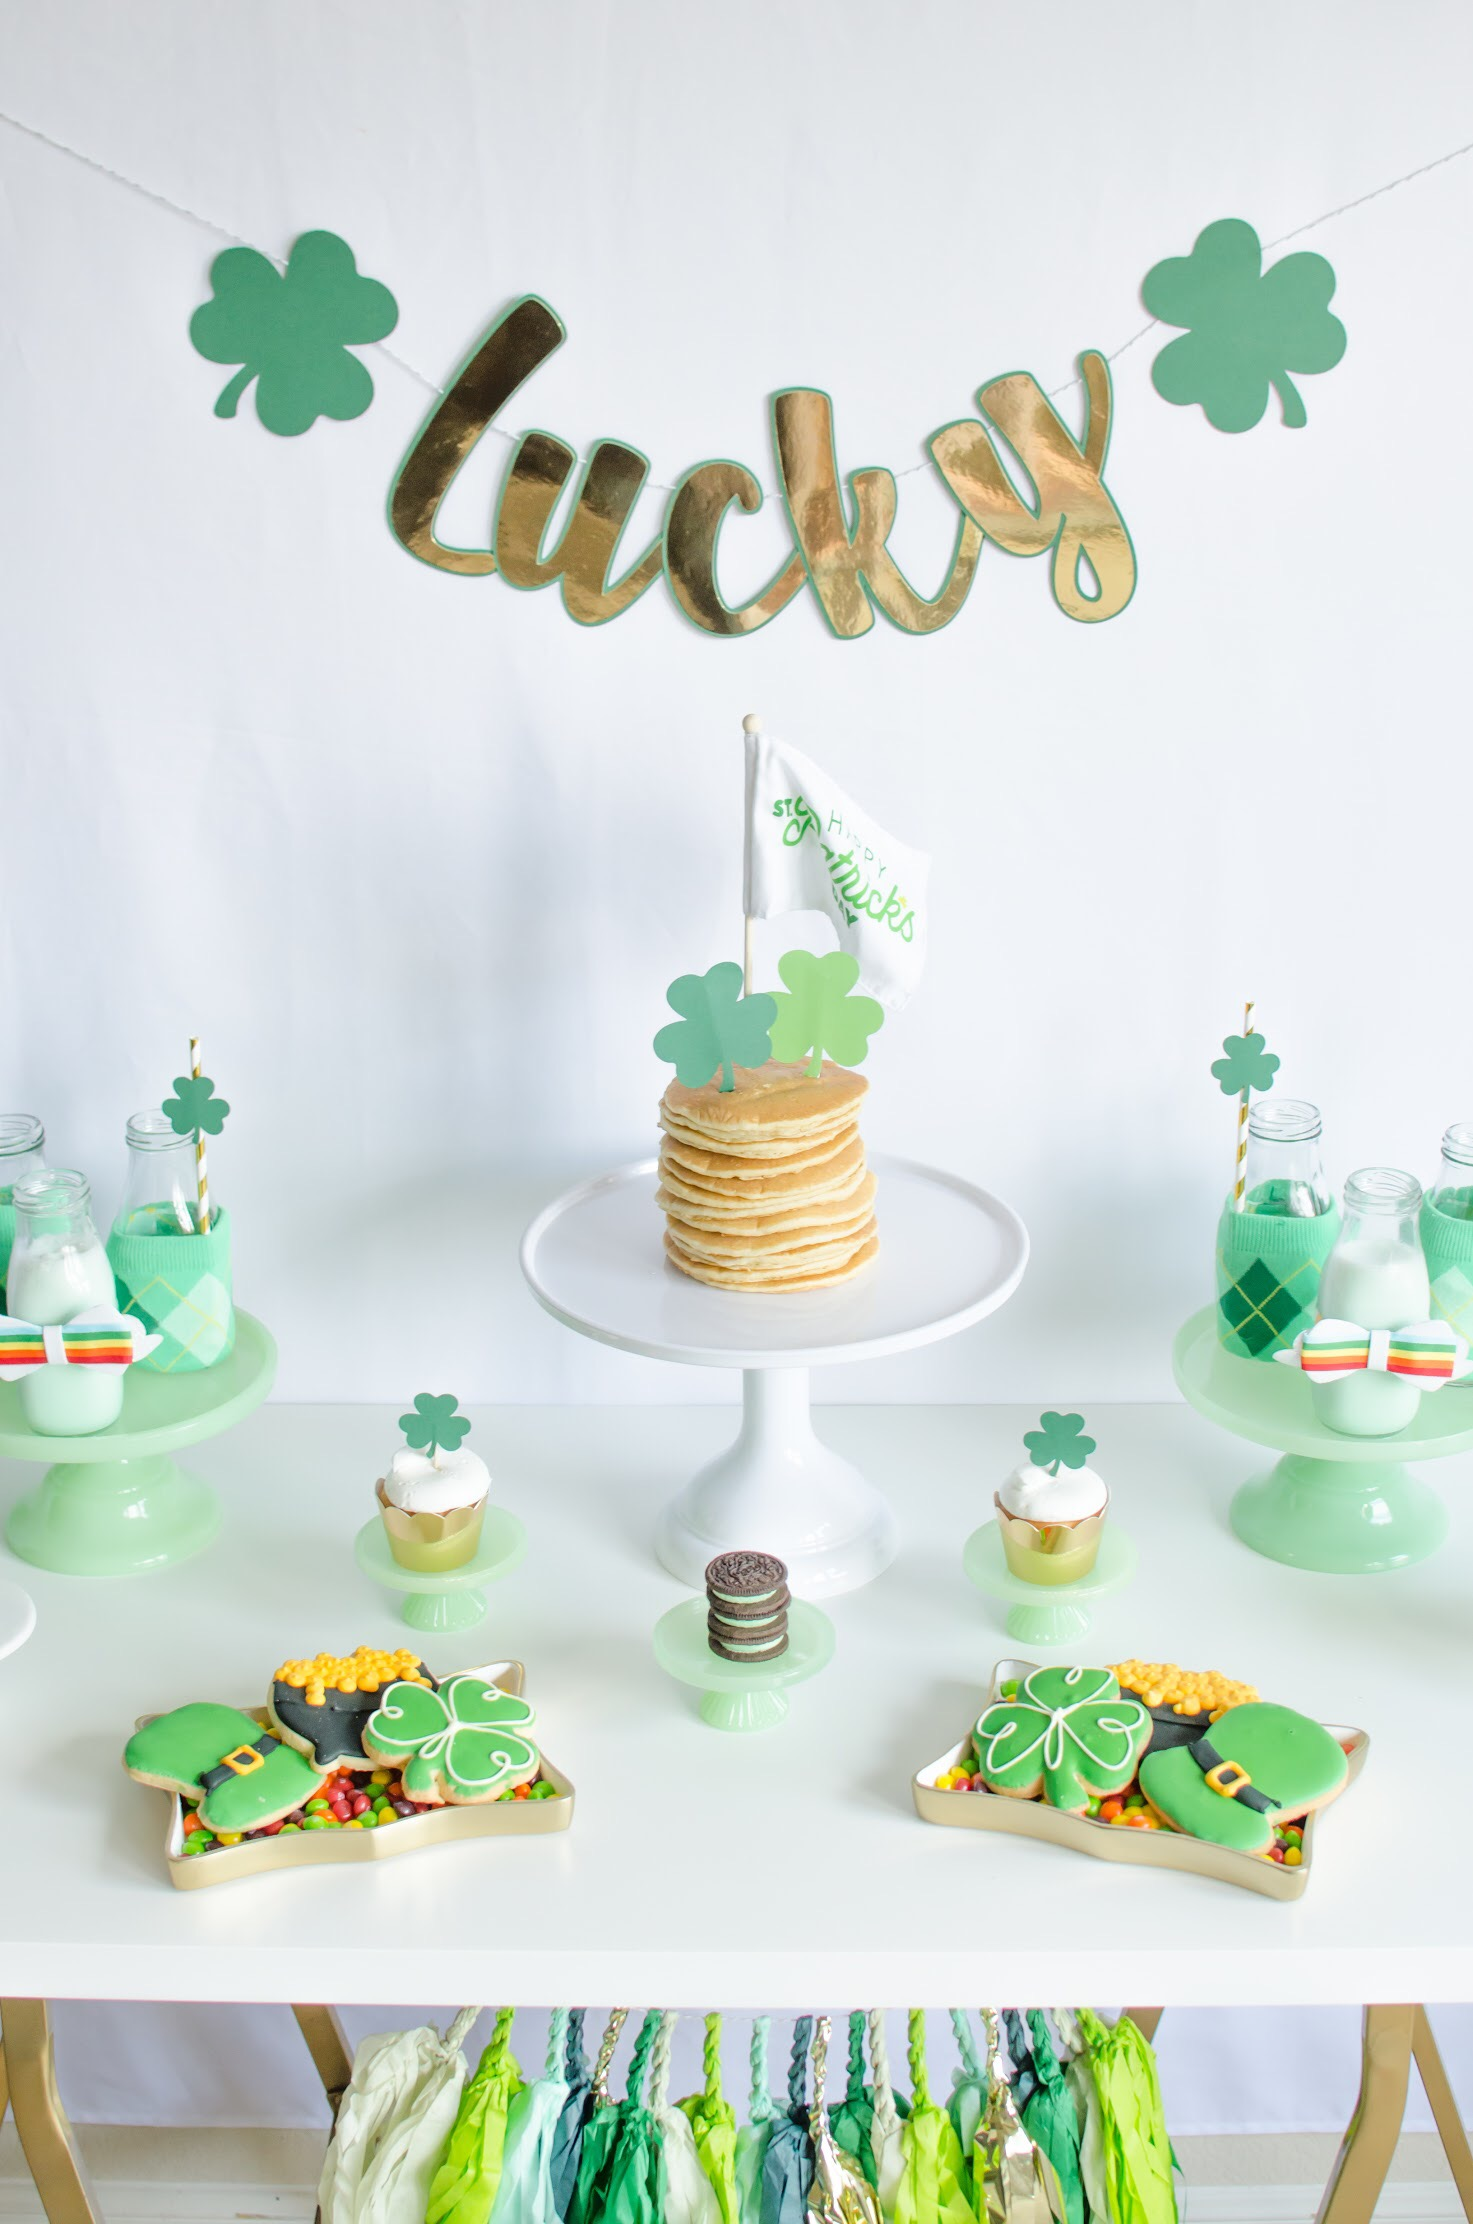 Recreate this Saint Patricks Day tablescape with Mint milkshakes and cute shamrock and horseshoe cupcake toppers. Find all the party details on Mint Event Design www.minteventdesign.com #partyideas #partydecorations #saintpatricksday #stpatricksday #tablescape #desserttable